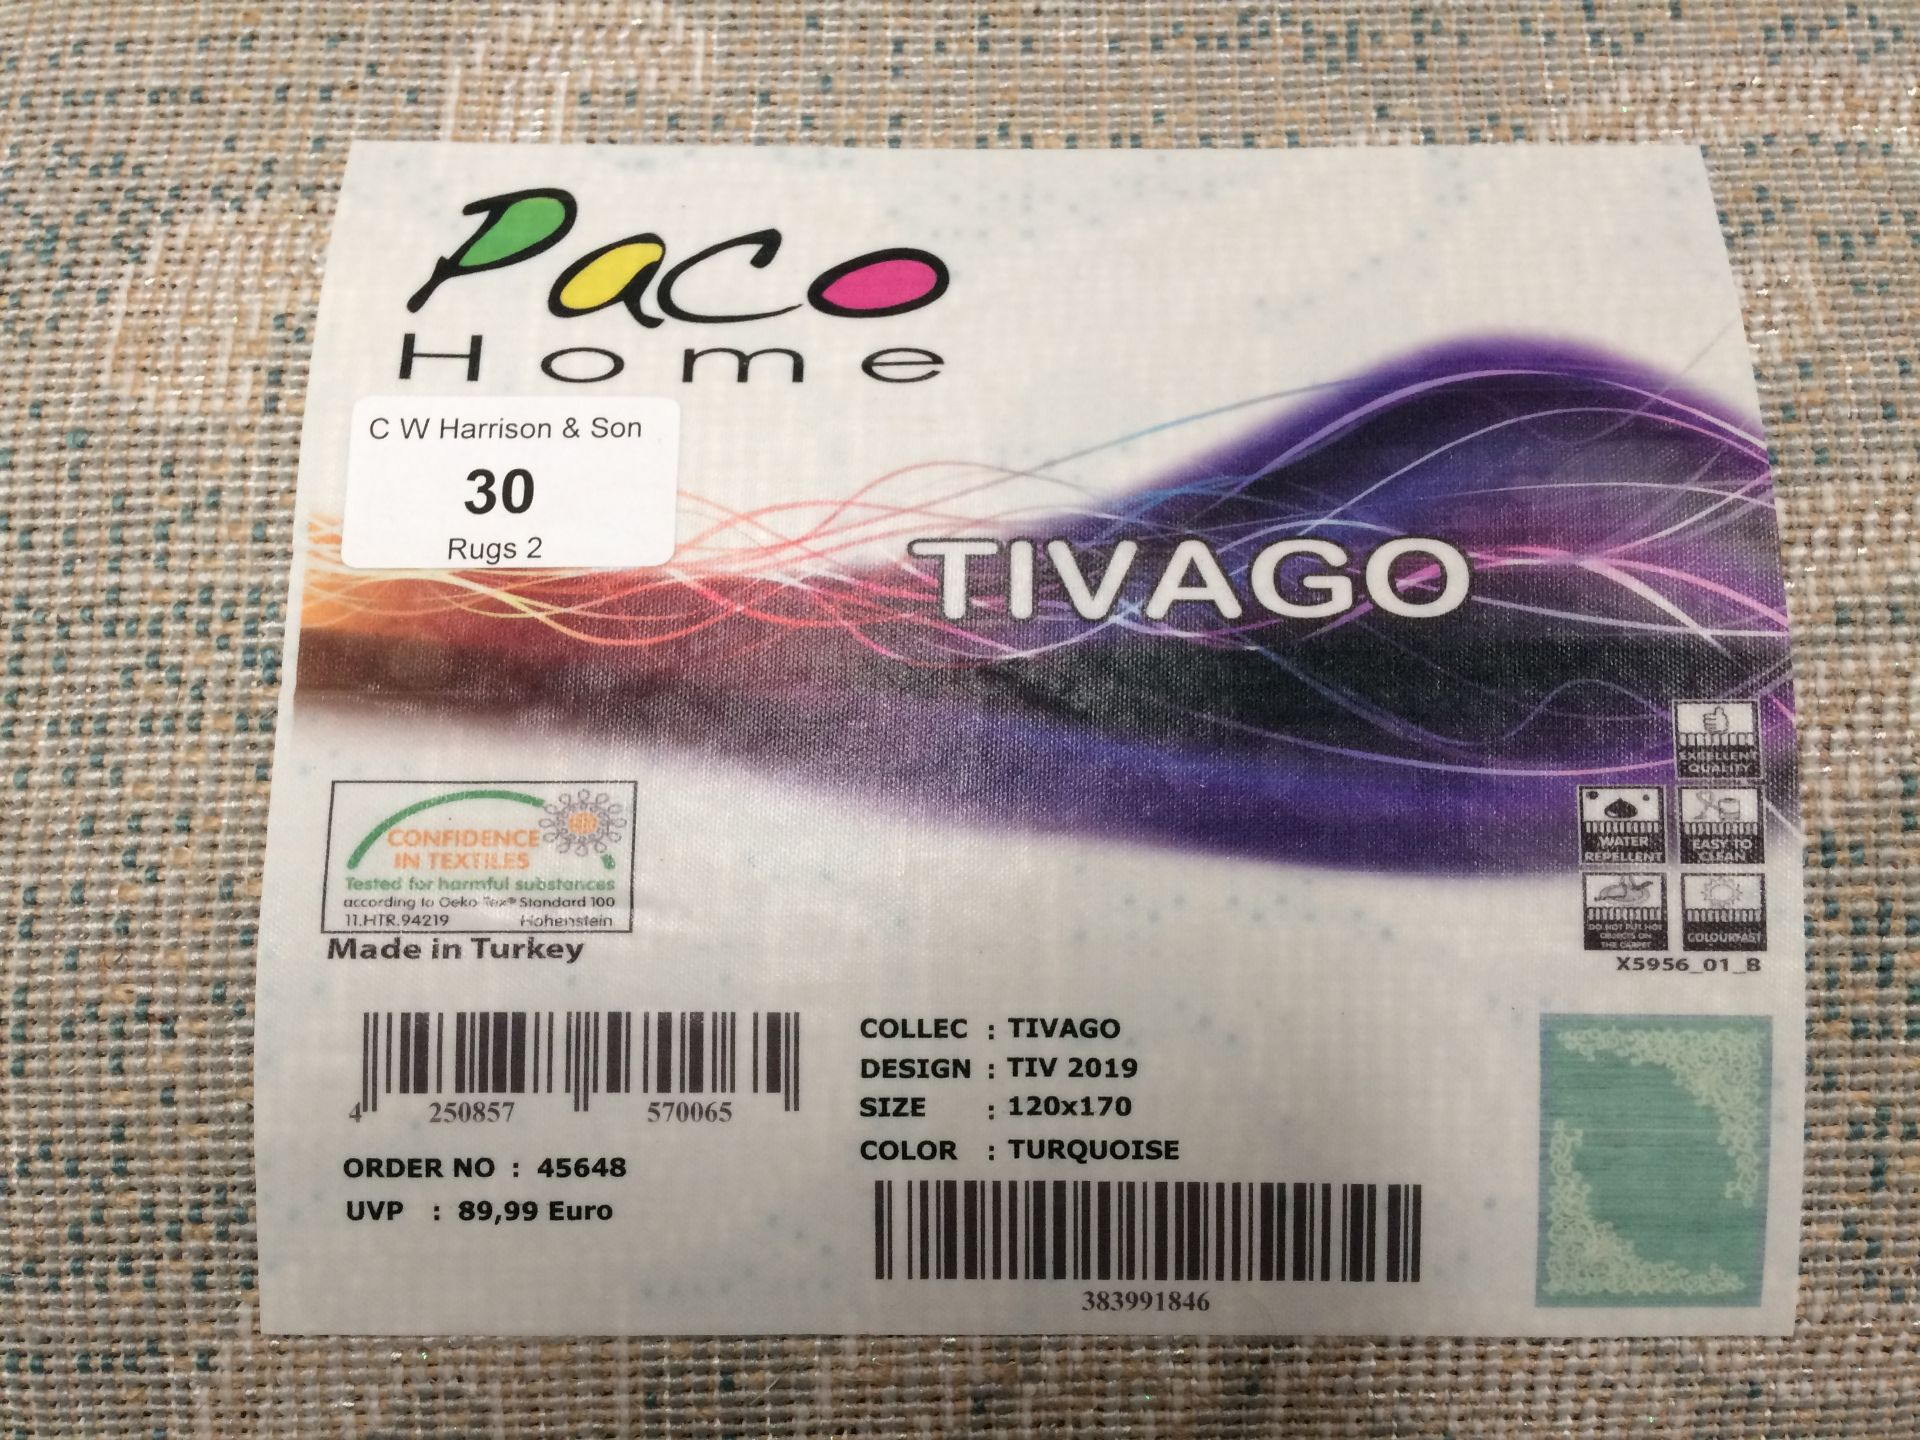 Lot 30 - A Paco Home Tivago TIV2019 turquoise rug - 120cm x 170cm